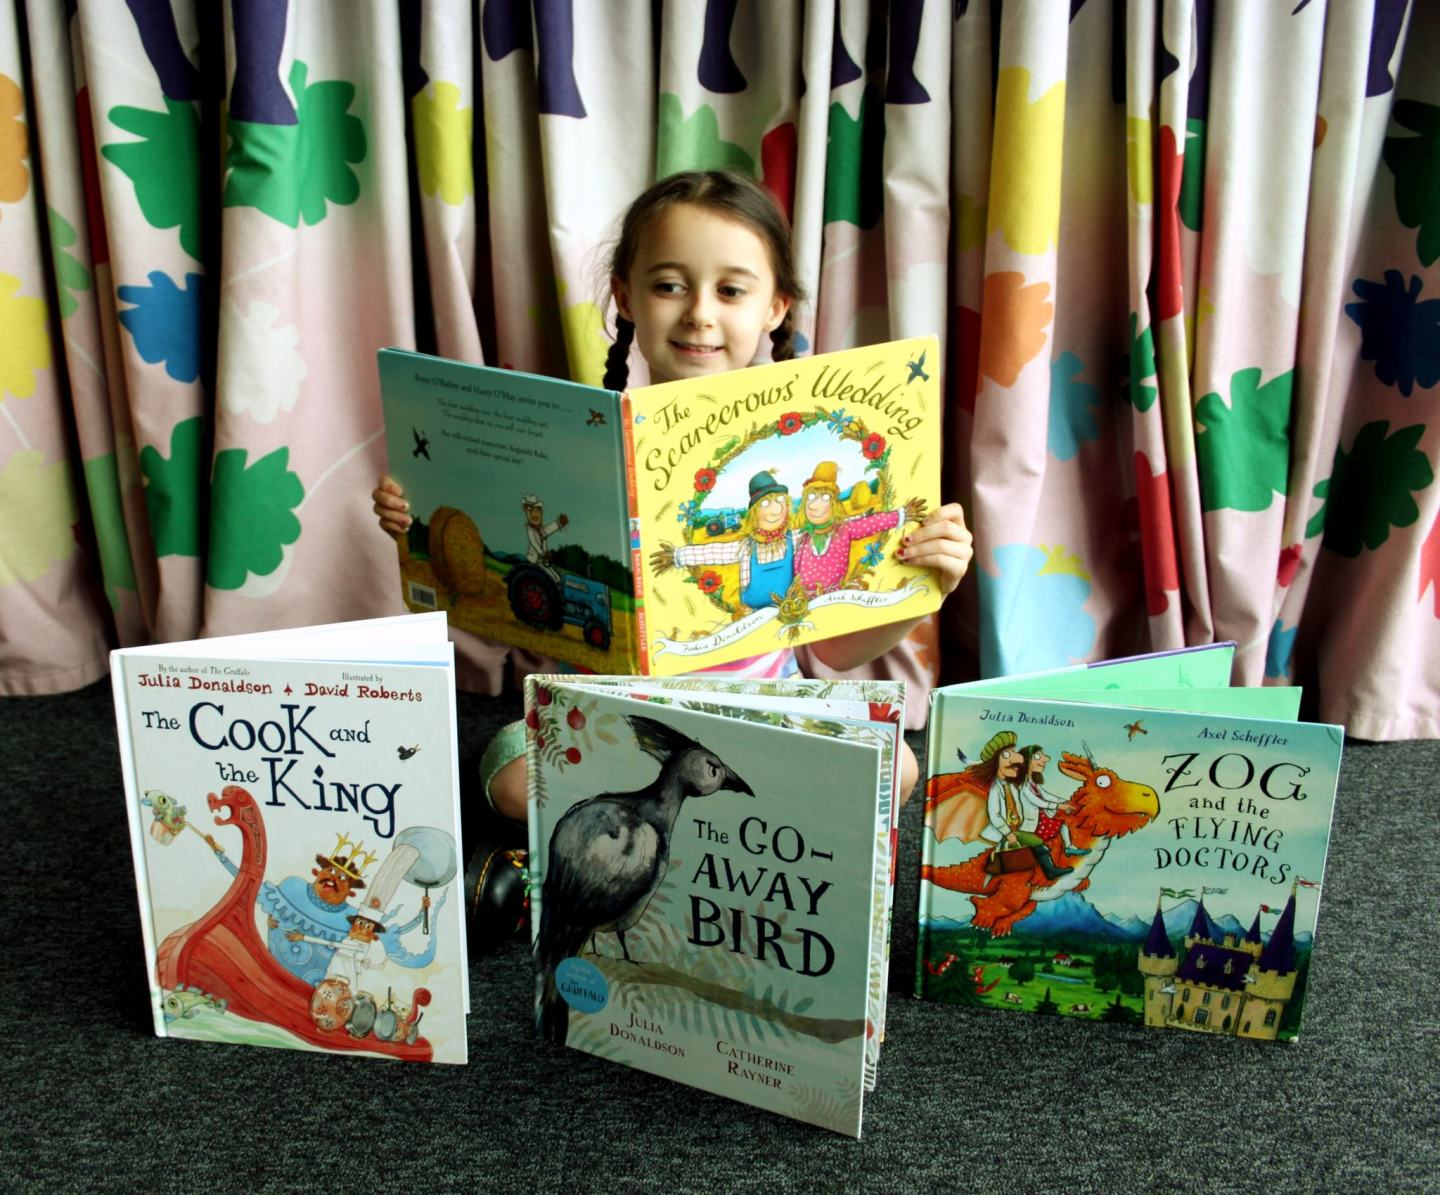 Our Favourite Julia Donaldson Books (A 5-Year Old's Review)